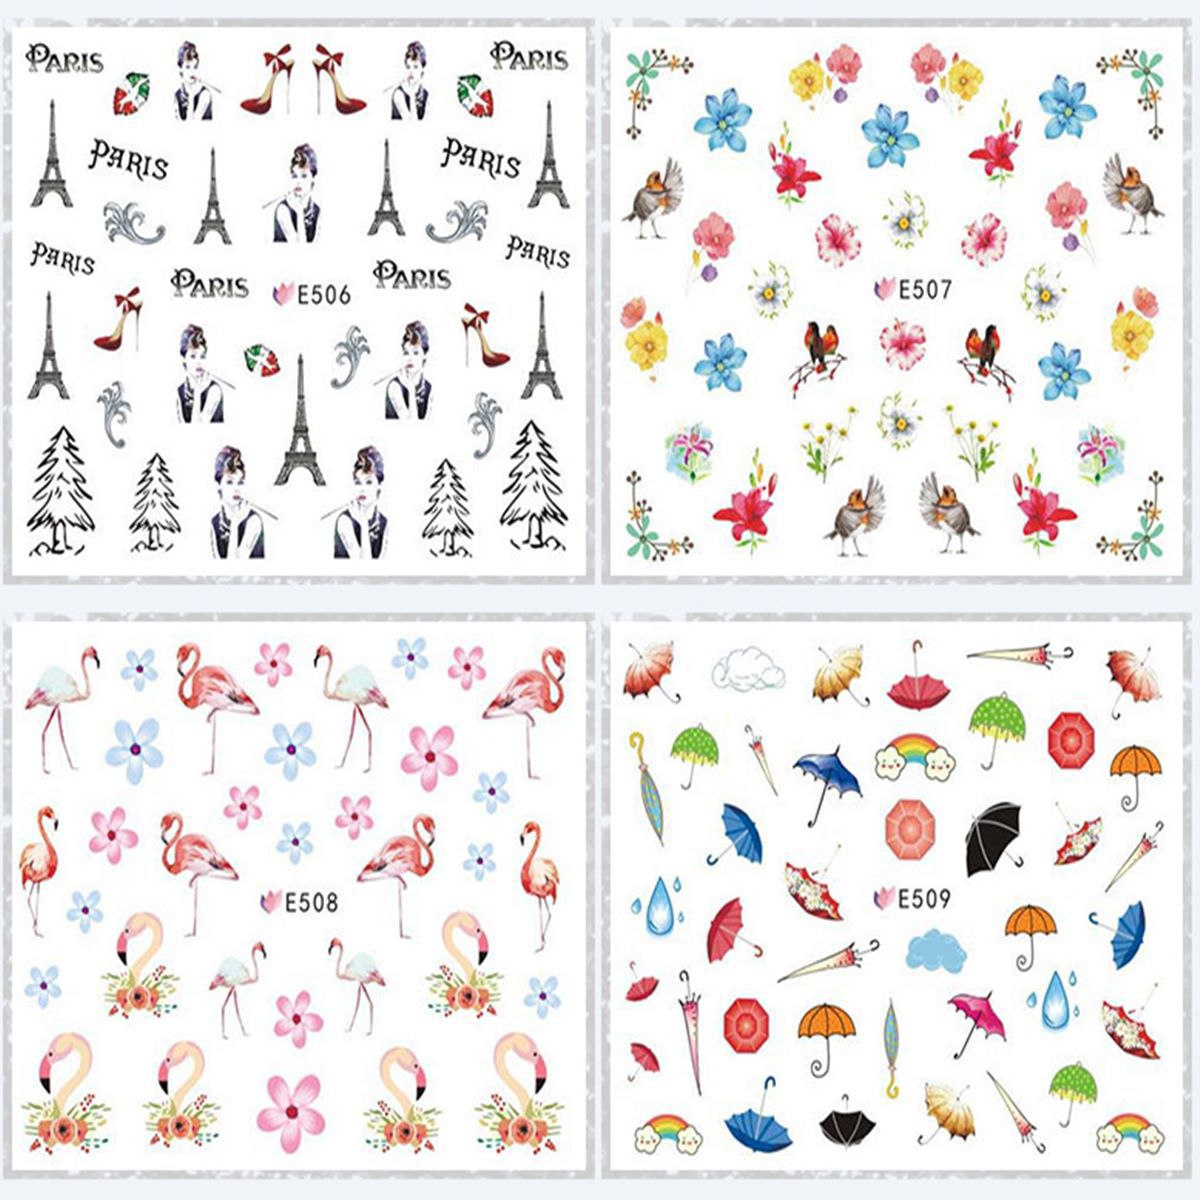 E490-555 Series 3D Suspender Strap Glue Nail Sticker 3D Nail Sticker Flower Butterfly Nail Polish Manicure Flower Stickers